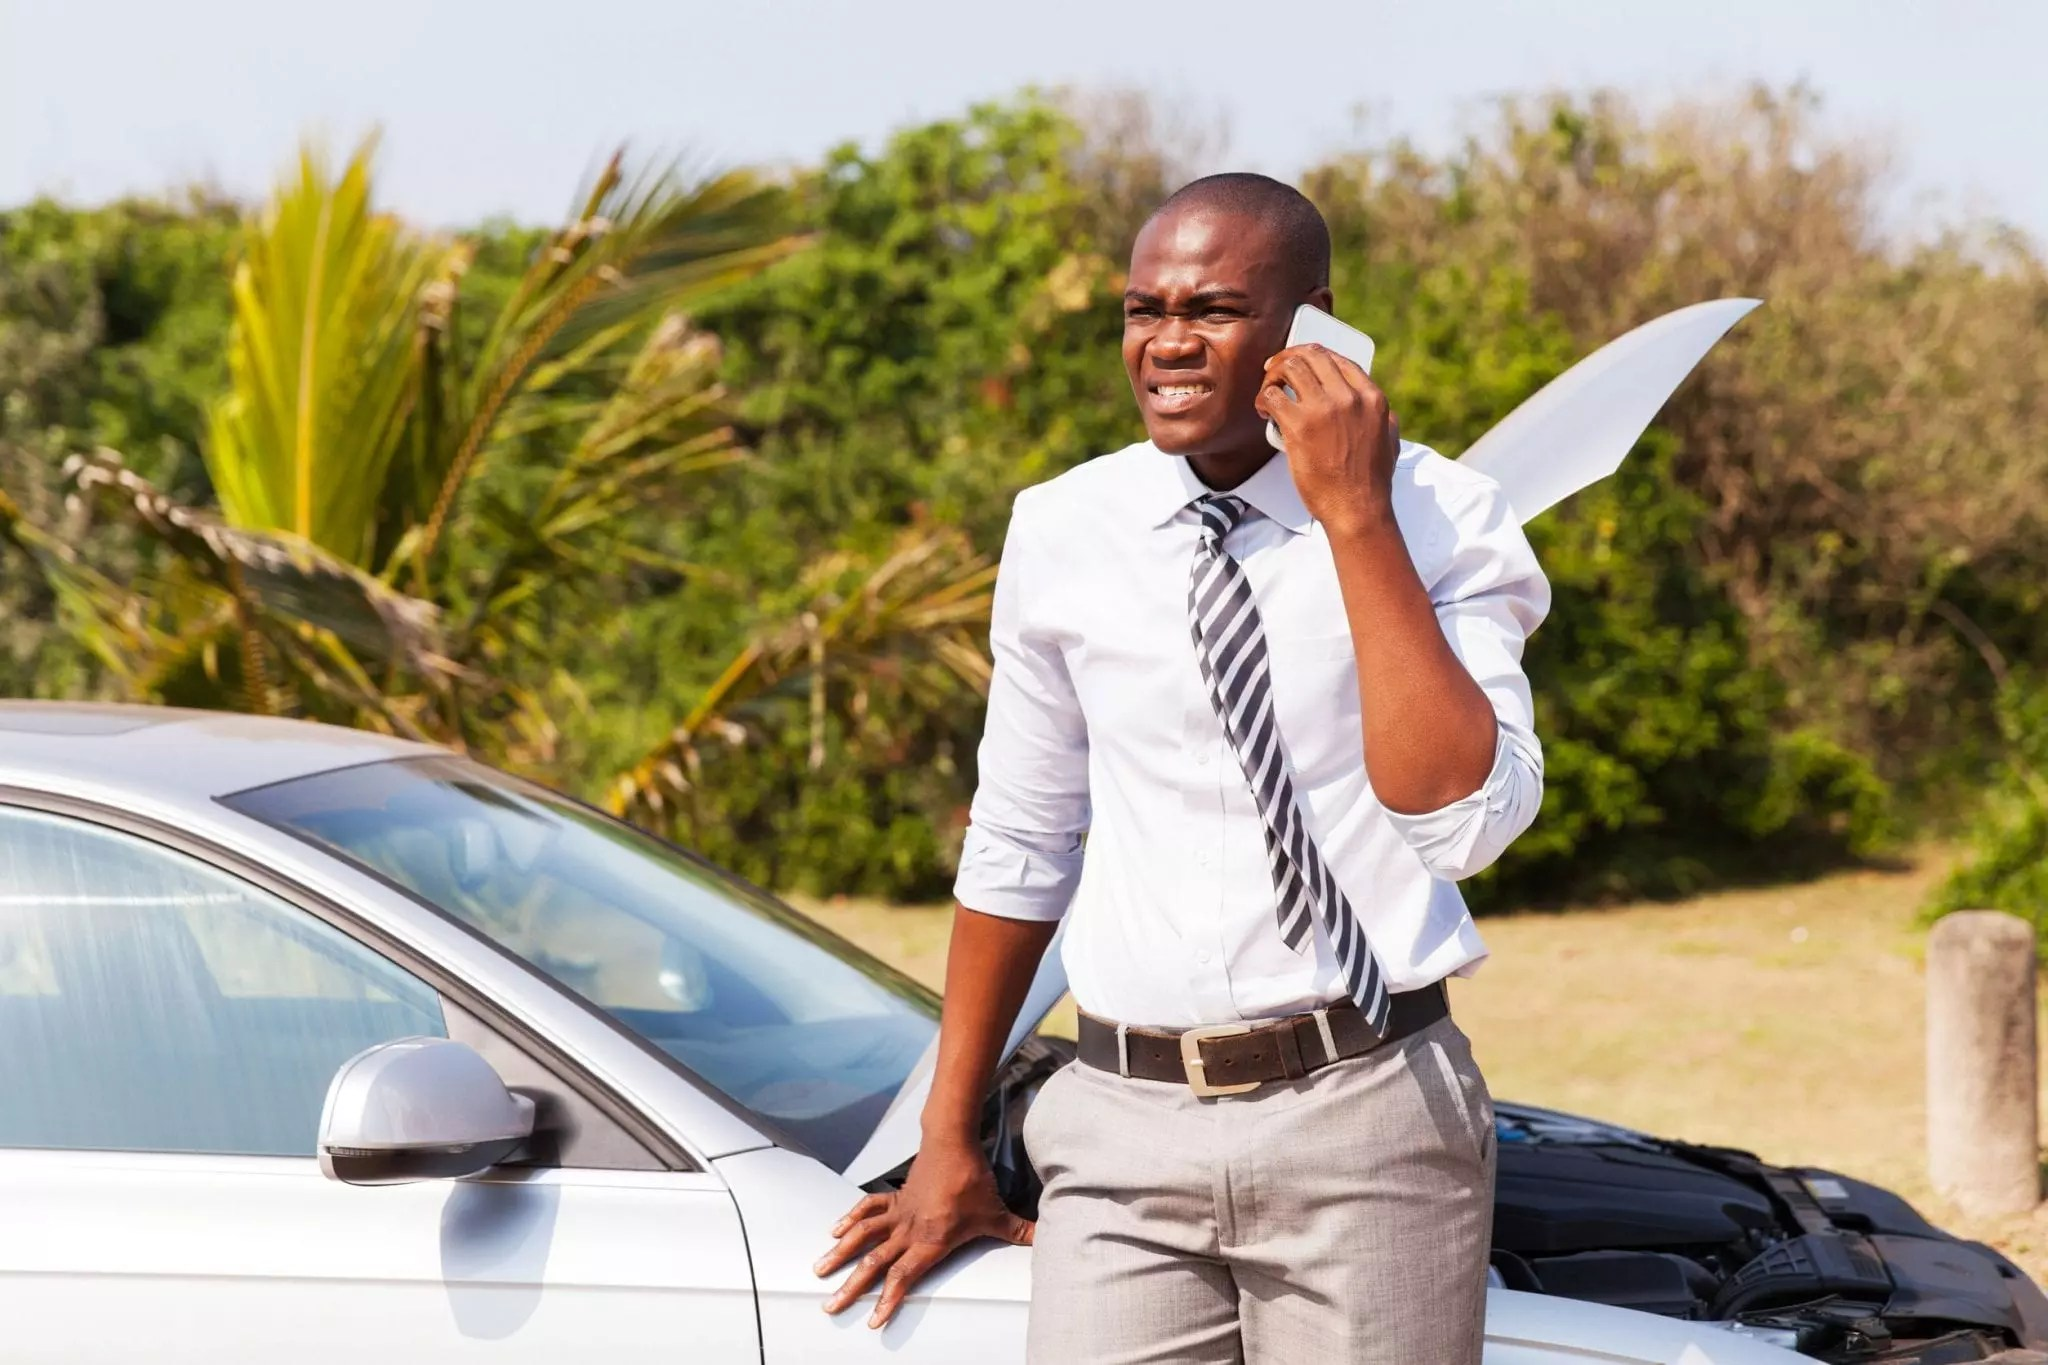 Man phoning for car to be repaired